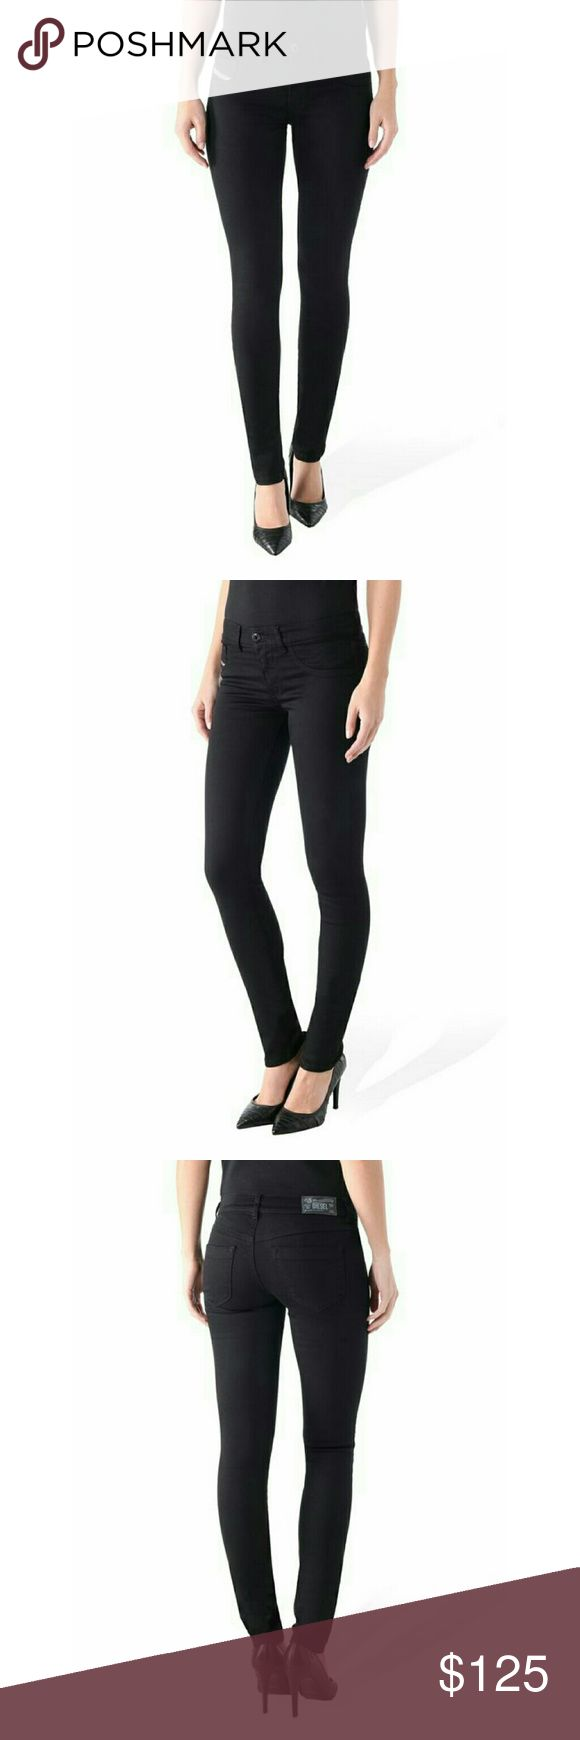 Diesel Livier 0800R Jeggings Brand: Diesel  Base Name: Livier 0800R Size: 27 Material: 98% Cotton 2% Elastane Outer Material Type: Cotton Style: Super Slim Jeggings - are low waist, skin tight, and mixes attitude of denim with the ease of jeggings. Comfortable and cool; it's the perfect everyday choice Diesel Pants